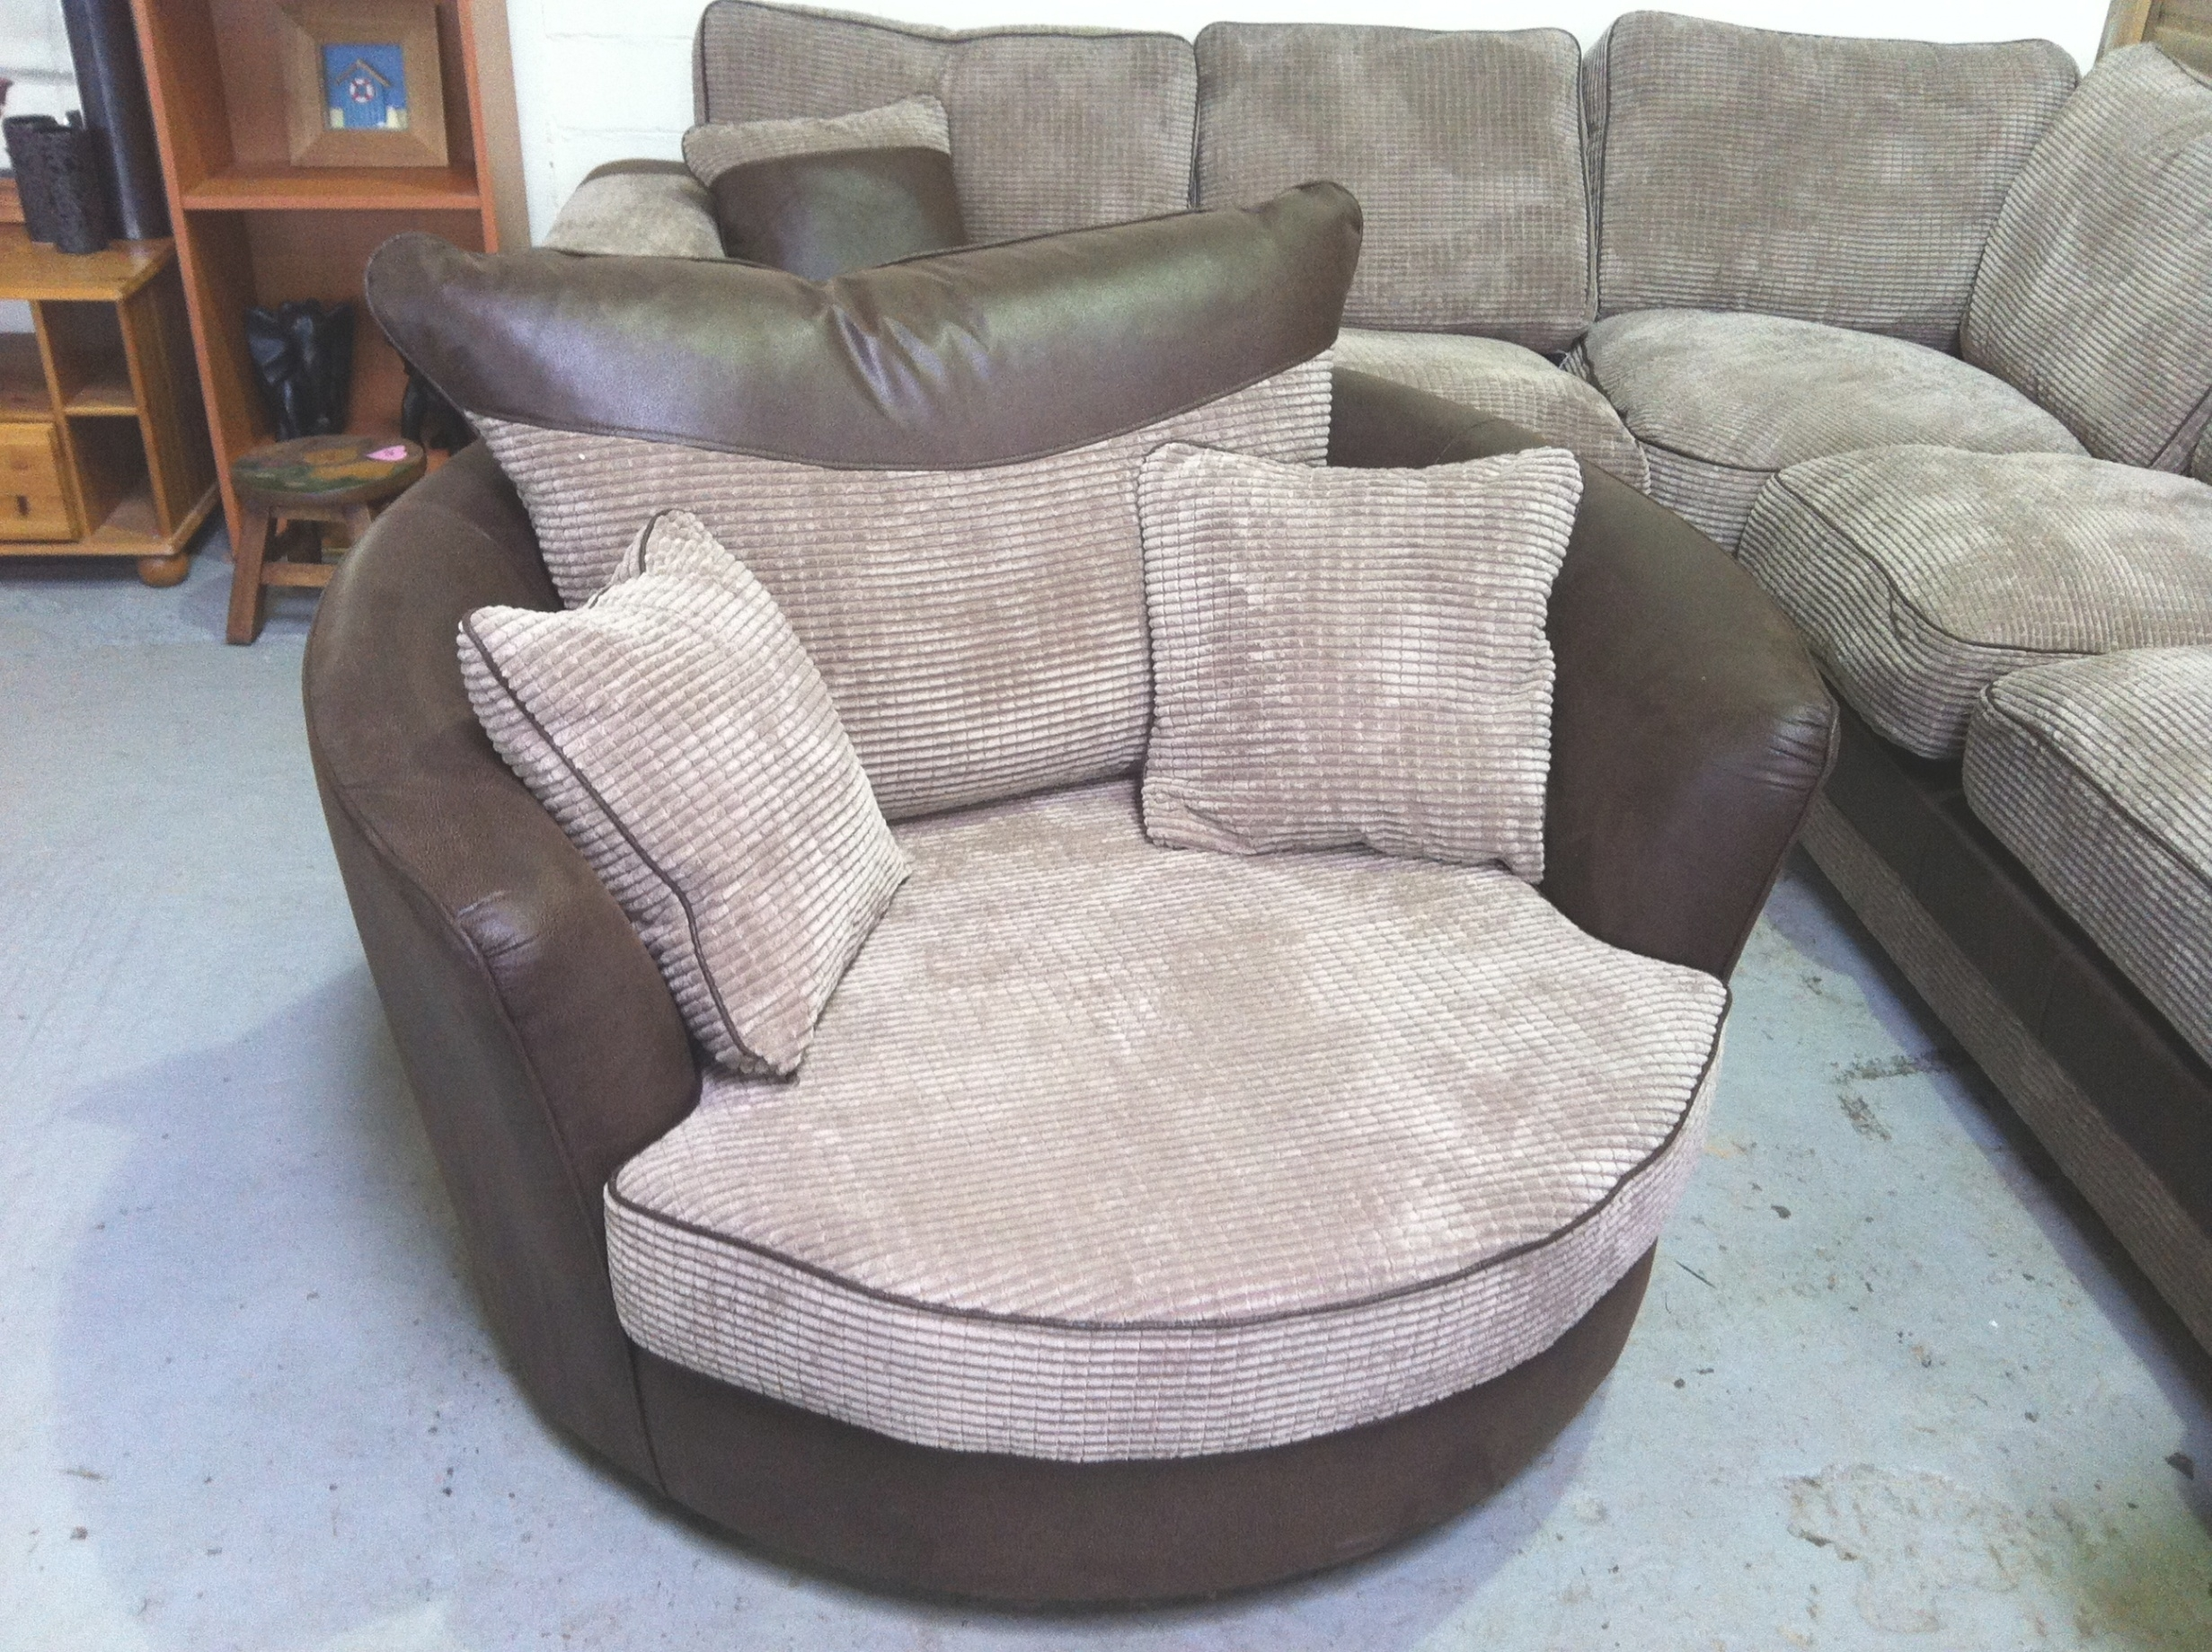 Round Swivel Snuggle Chair Home Chair Designs With Round Swivel Sofa Chairs (Image 8 of 15)